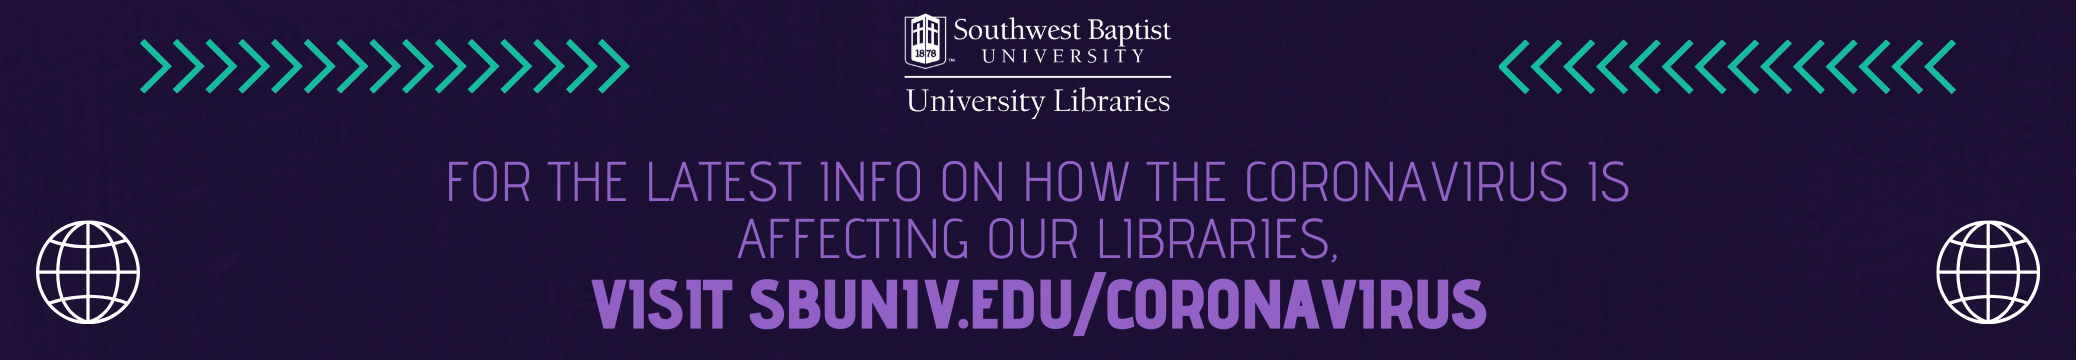 Click to learn how our libraries are affected by COVID-19